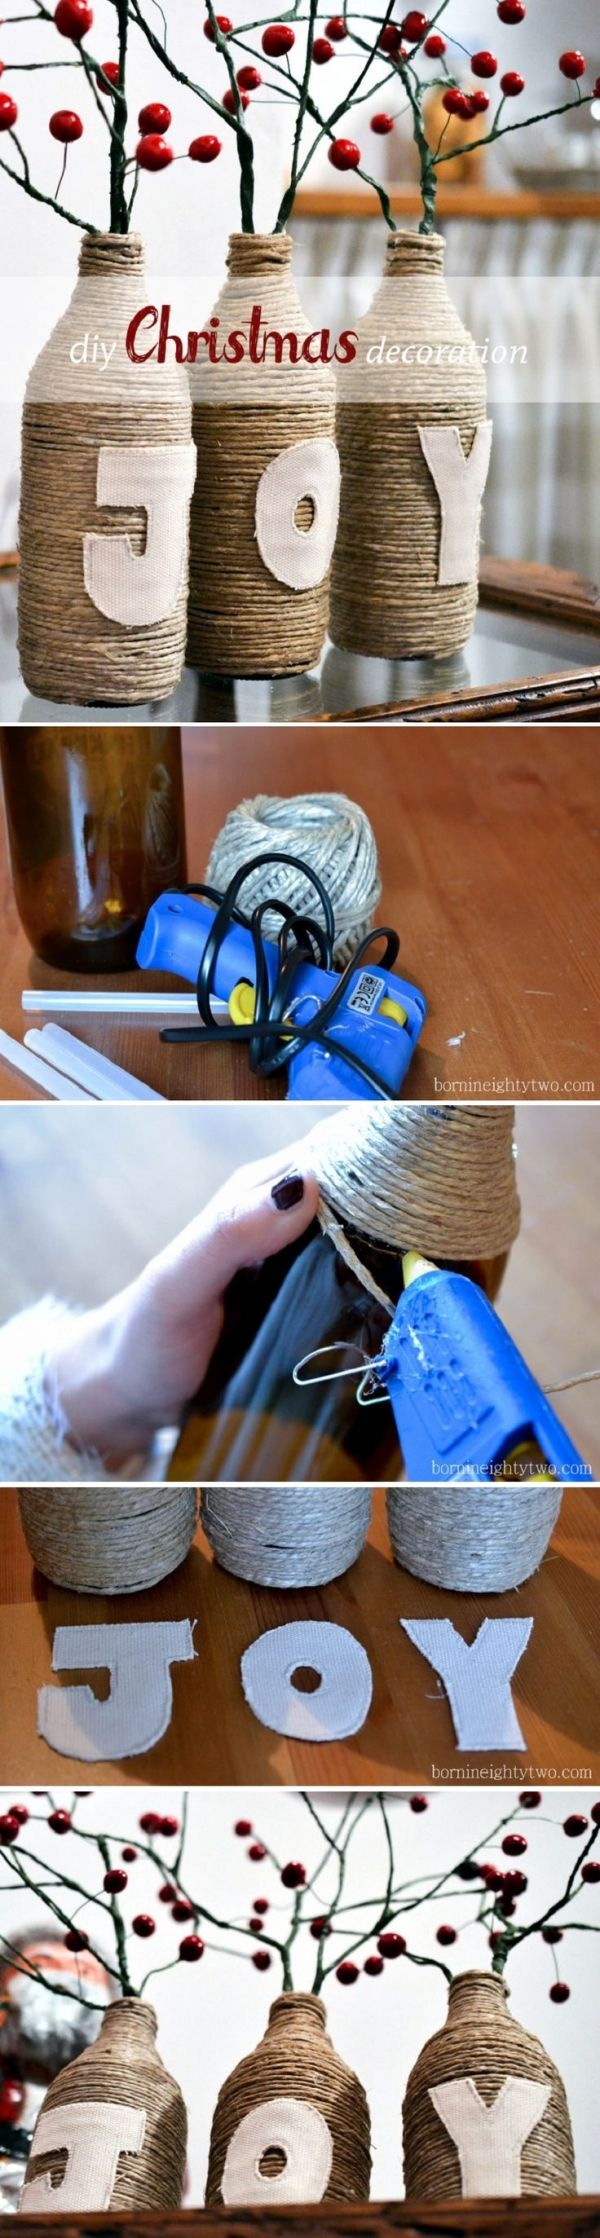 Diy Christmas Decoration {JOY} - 15 Best DIY Ideas to Winterize Your Home for Christmas | GleamItUp by BarbieSharinda